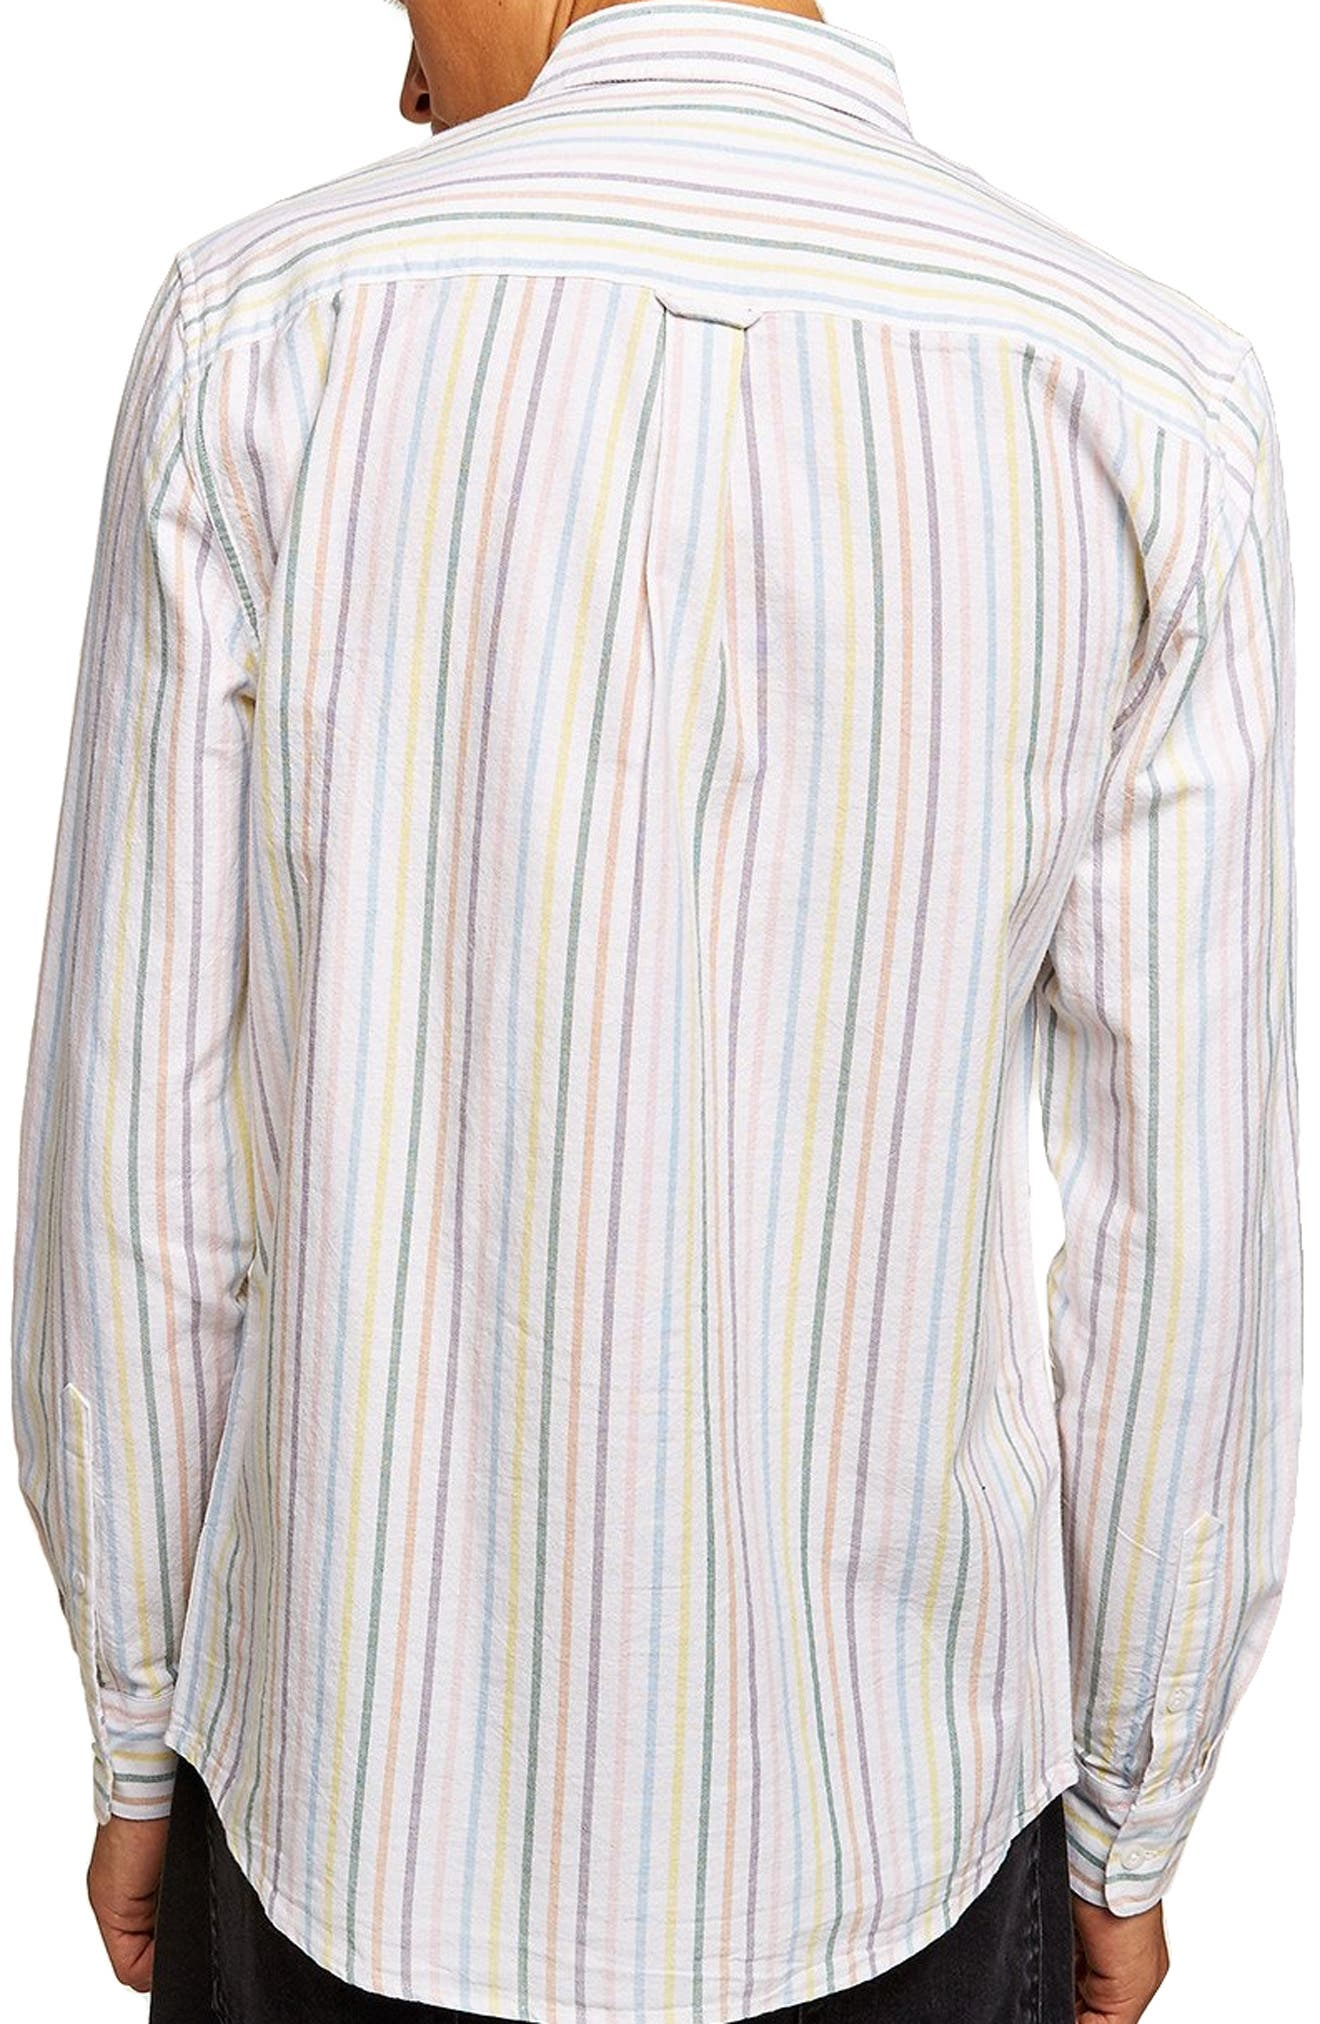 Classic Stripe Shirt,                             Alternate thumbnail 3, color,                             WHITE MULTI